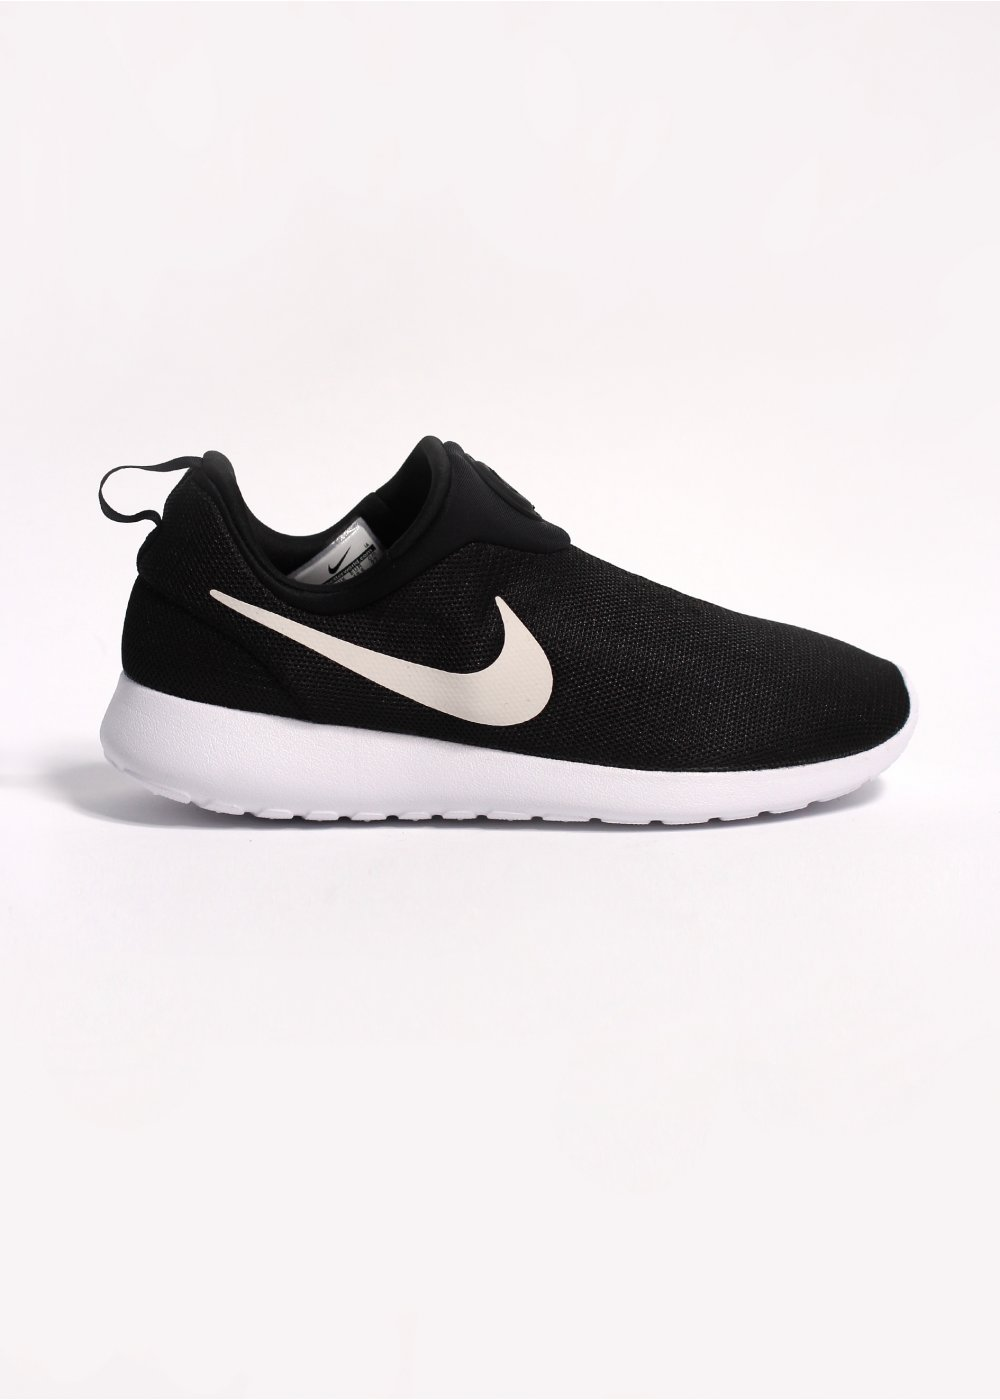 Nike Roshe Run ;BlackWhite ;